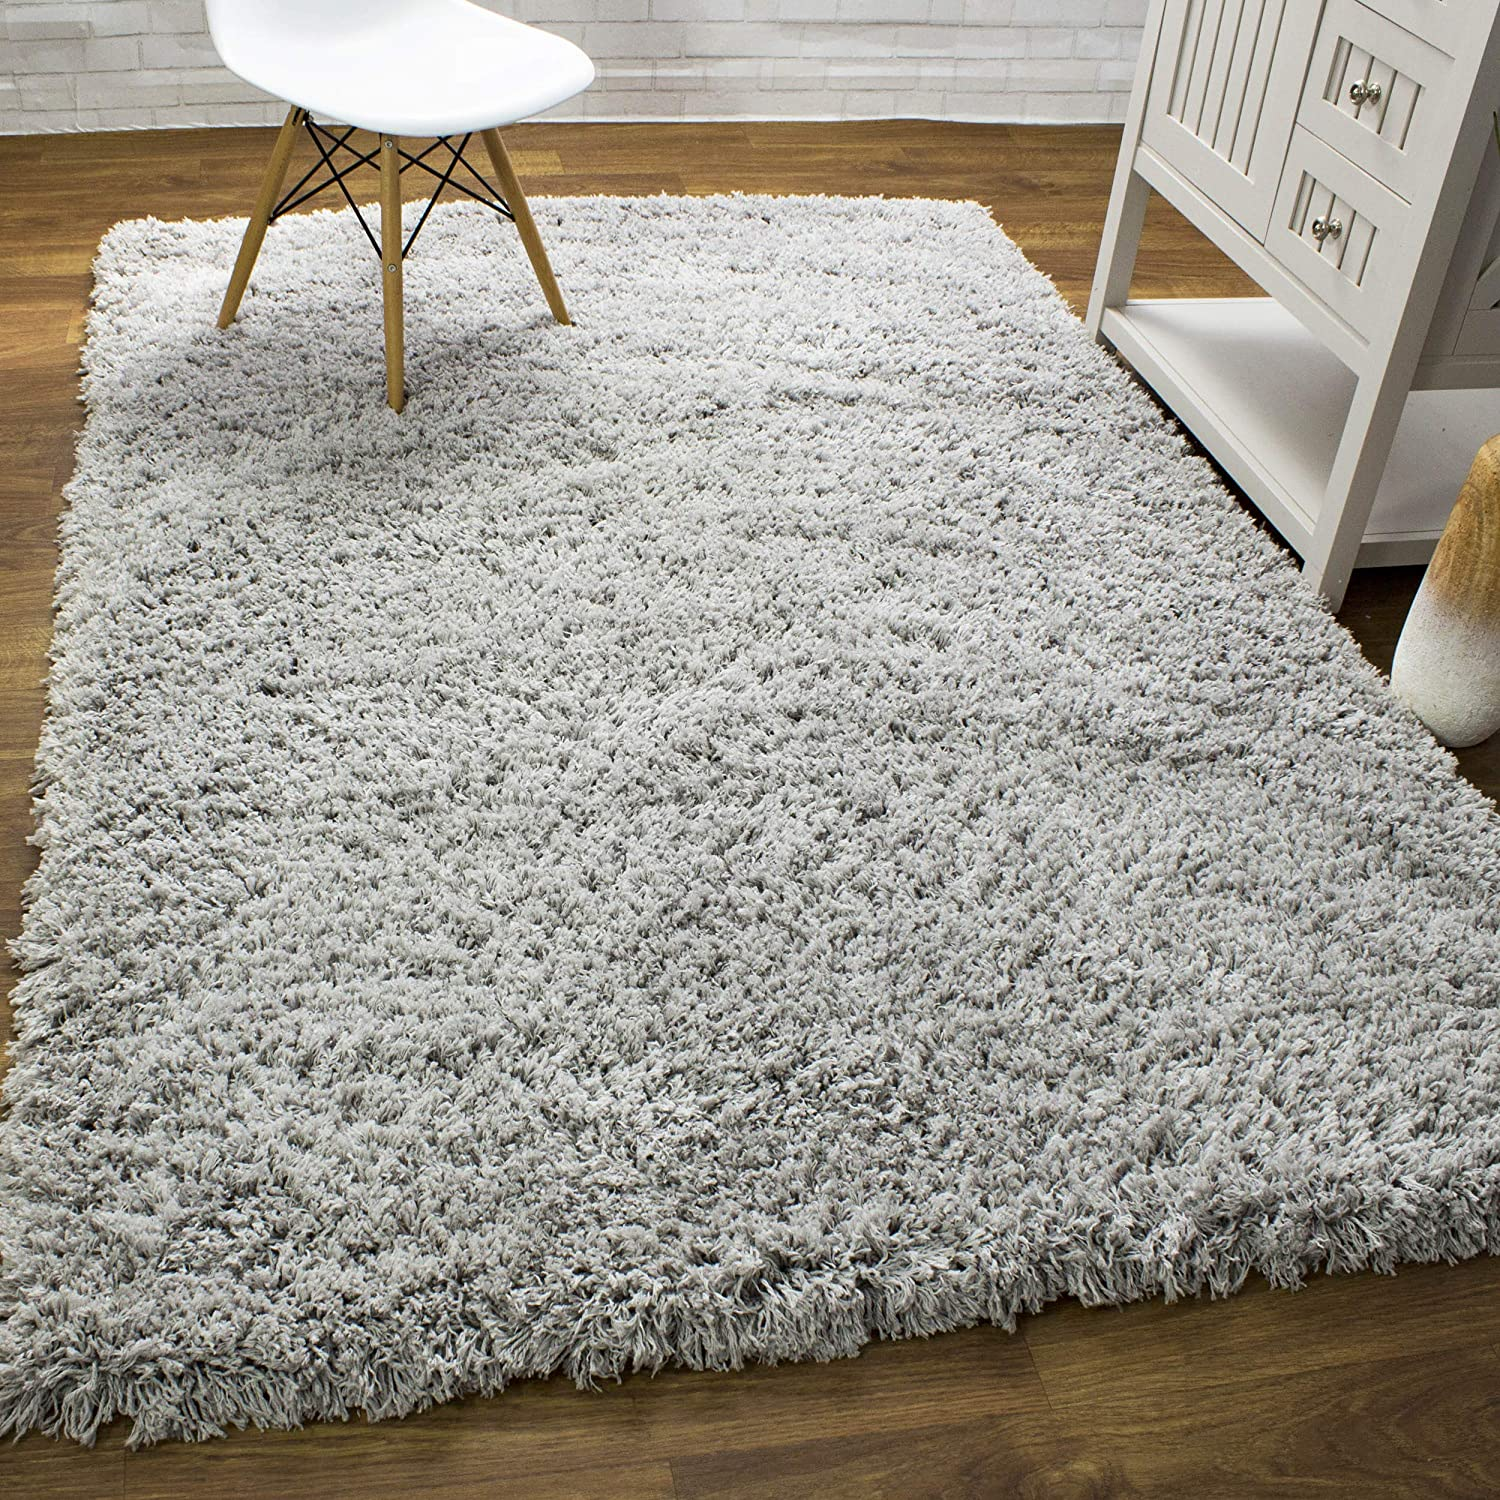 Super Area Rugs Premium Gray Shag Rug Large 8x10 for Indoor Spaces Thick & Extra Soft Shaggy 2-inch Pile